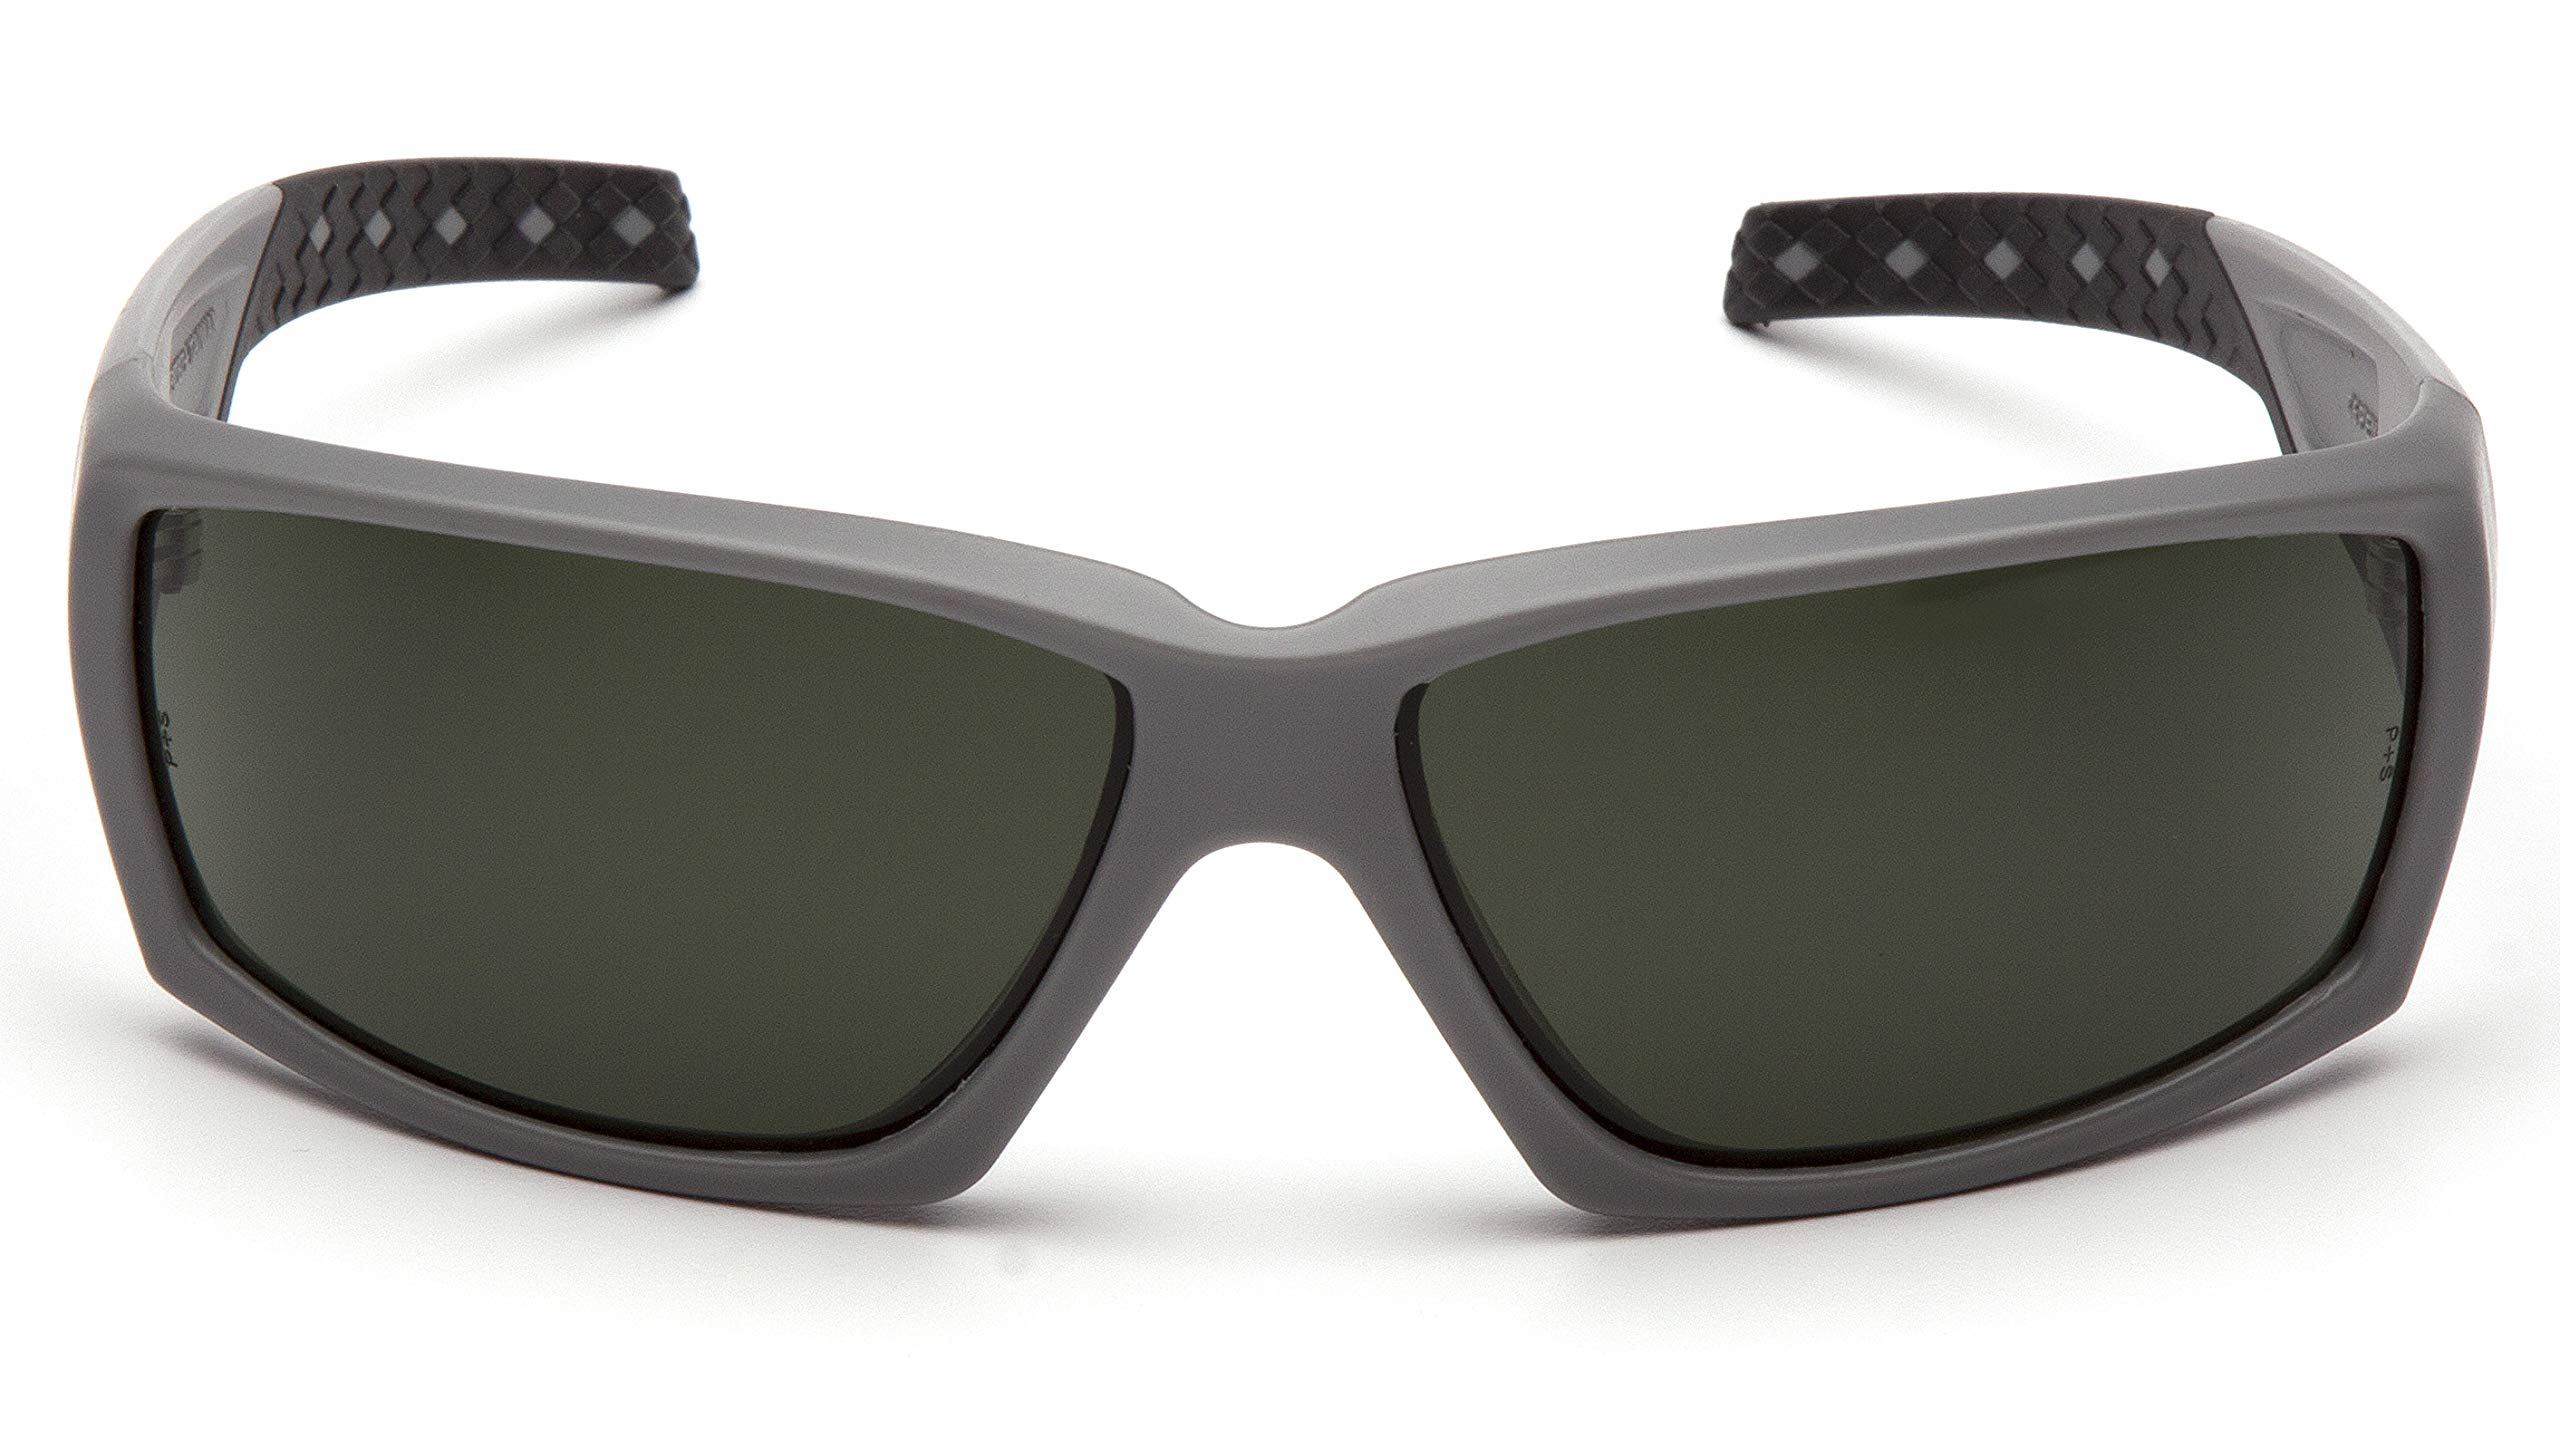 Venture Gear VGSUG722T Overwatch Tactical Sunglasses with Anti-Fog Lens, Urban Gray/Forest Gray by Venture Gear (Image #2)